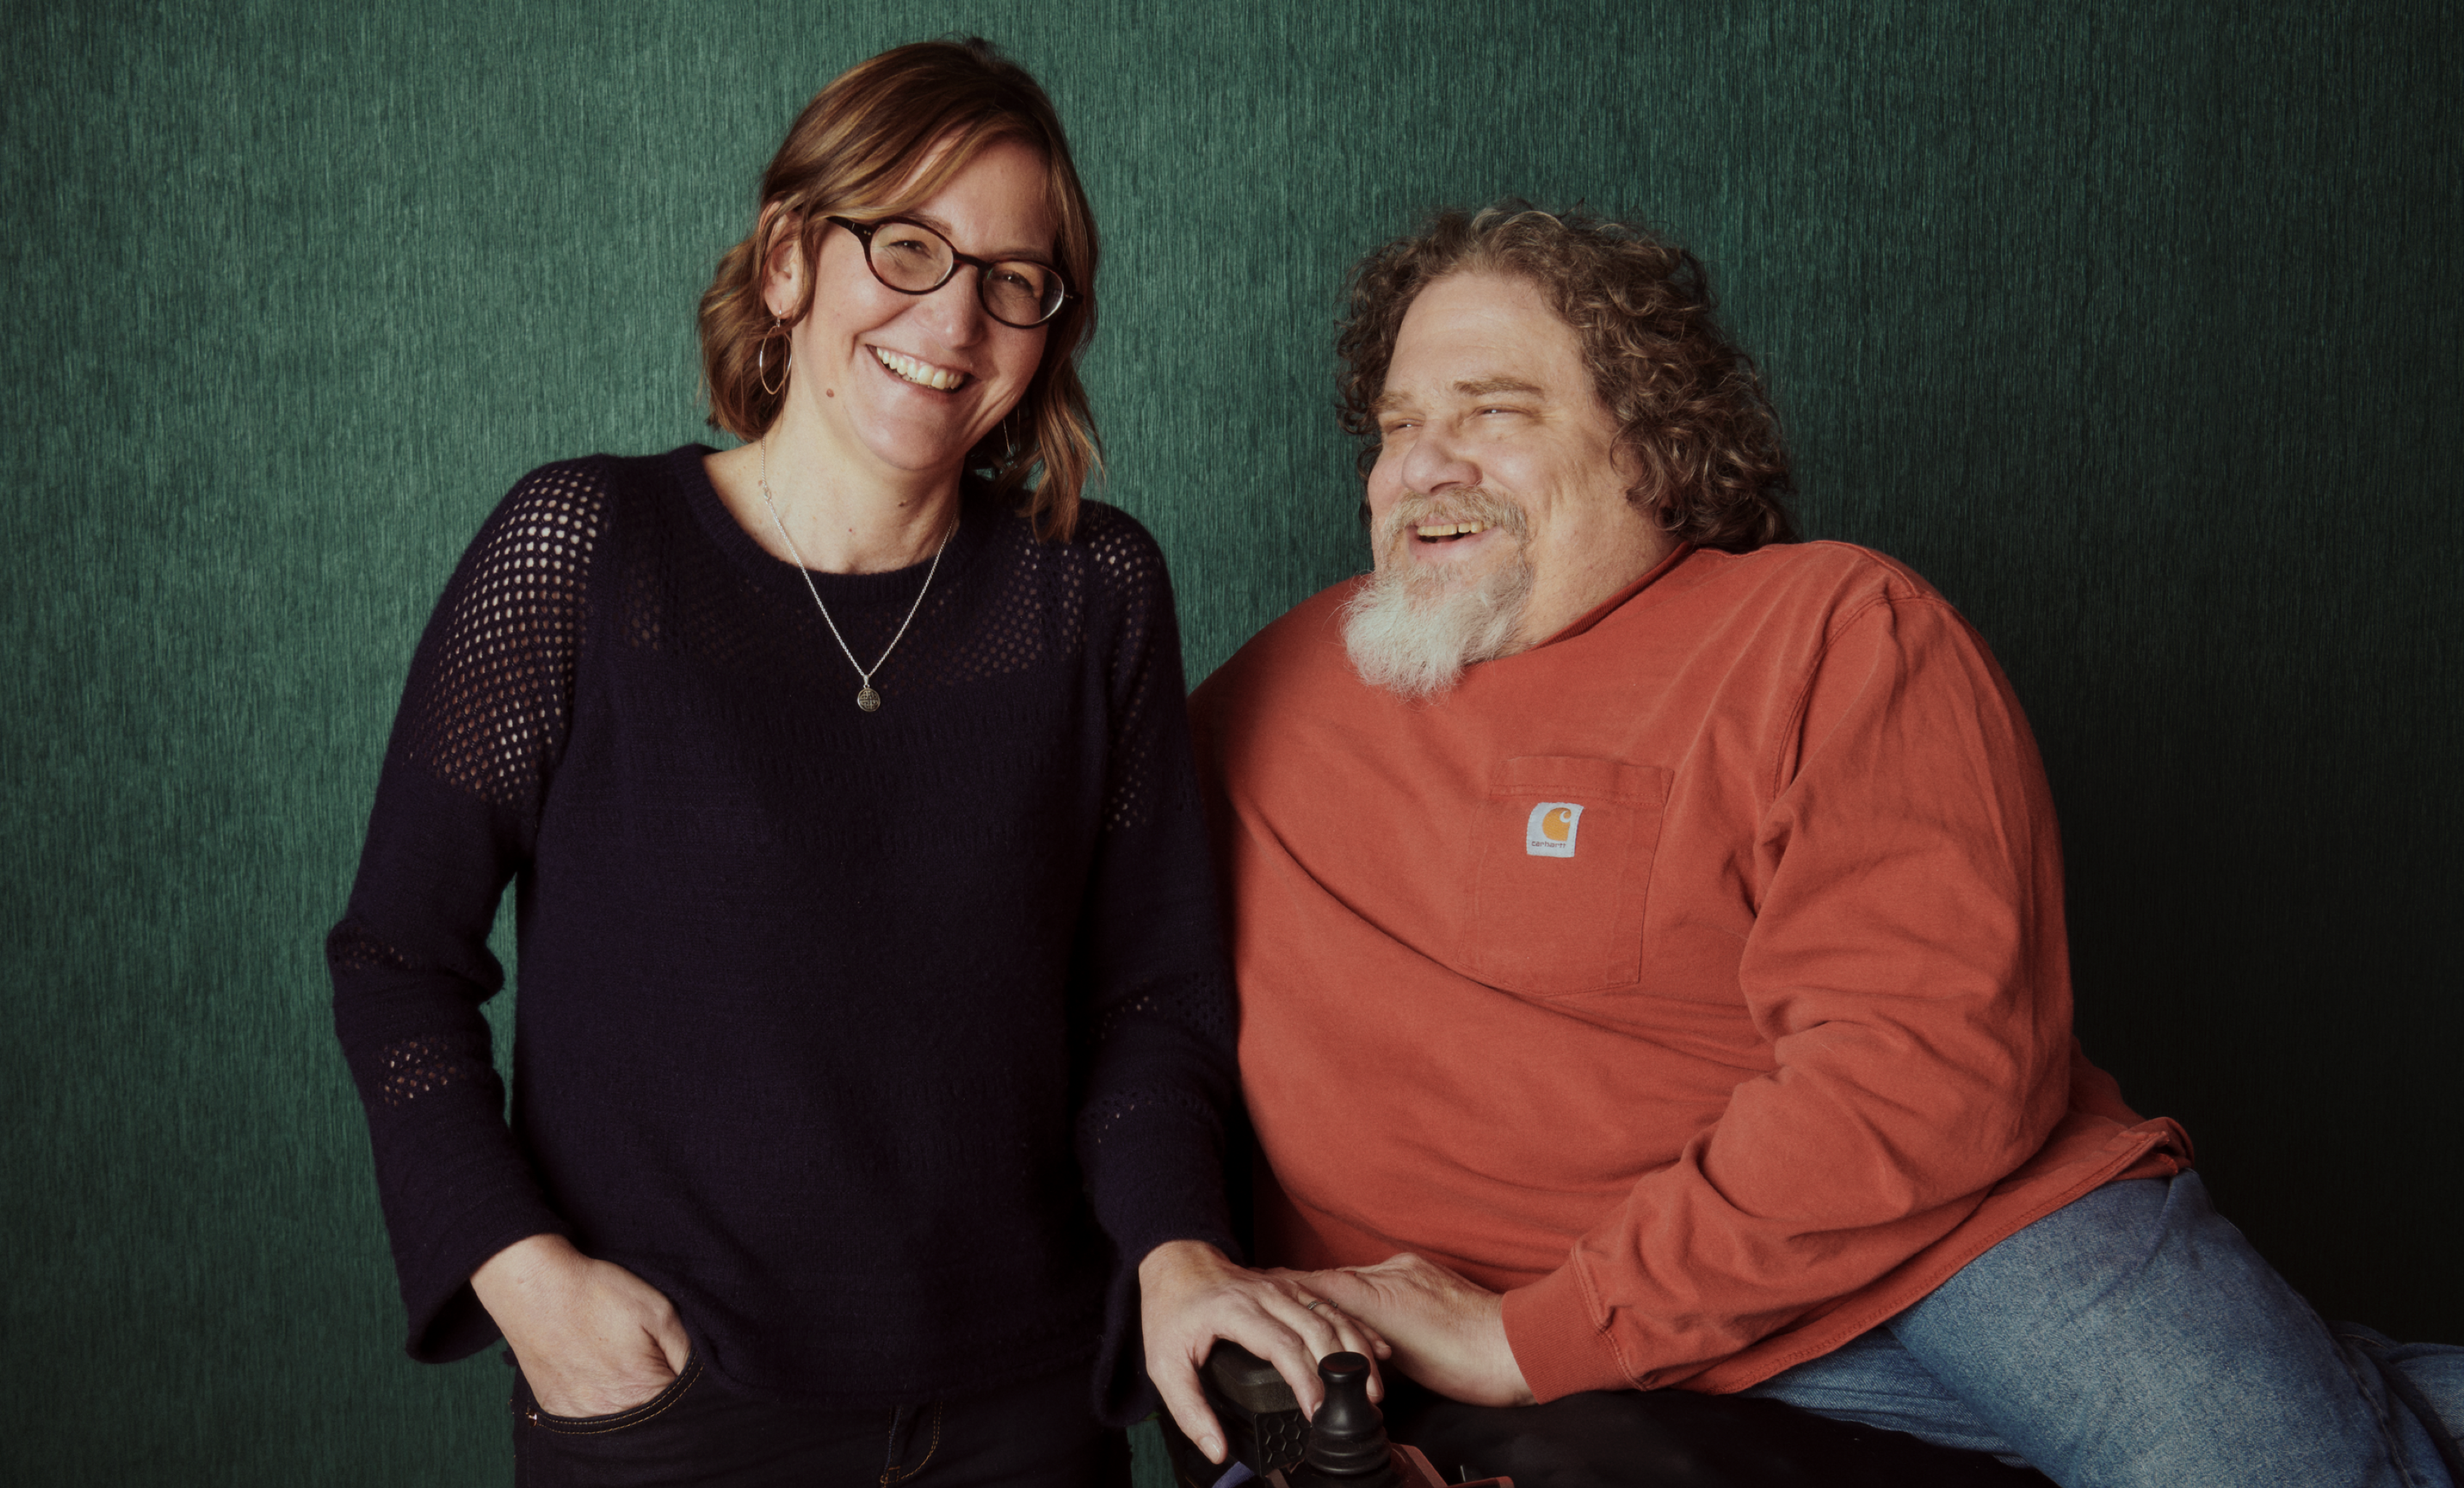 Crip Camp co-directors Nicole Newnham and Jim LeBrecht pose, laughing, in front of a green backdrop.